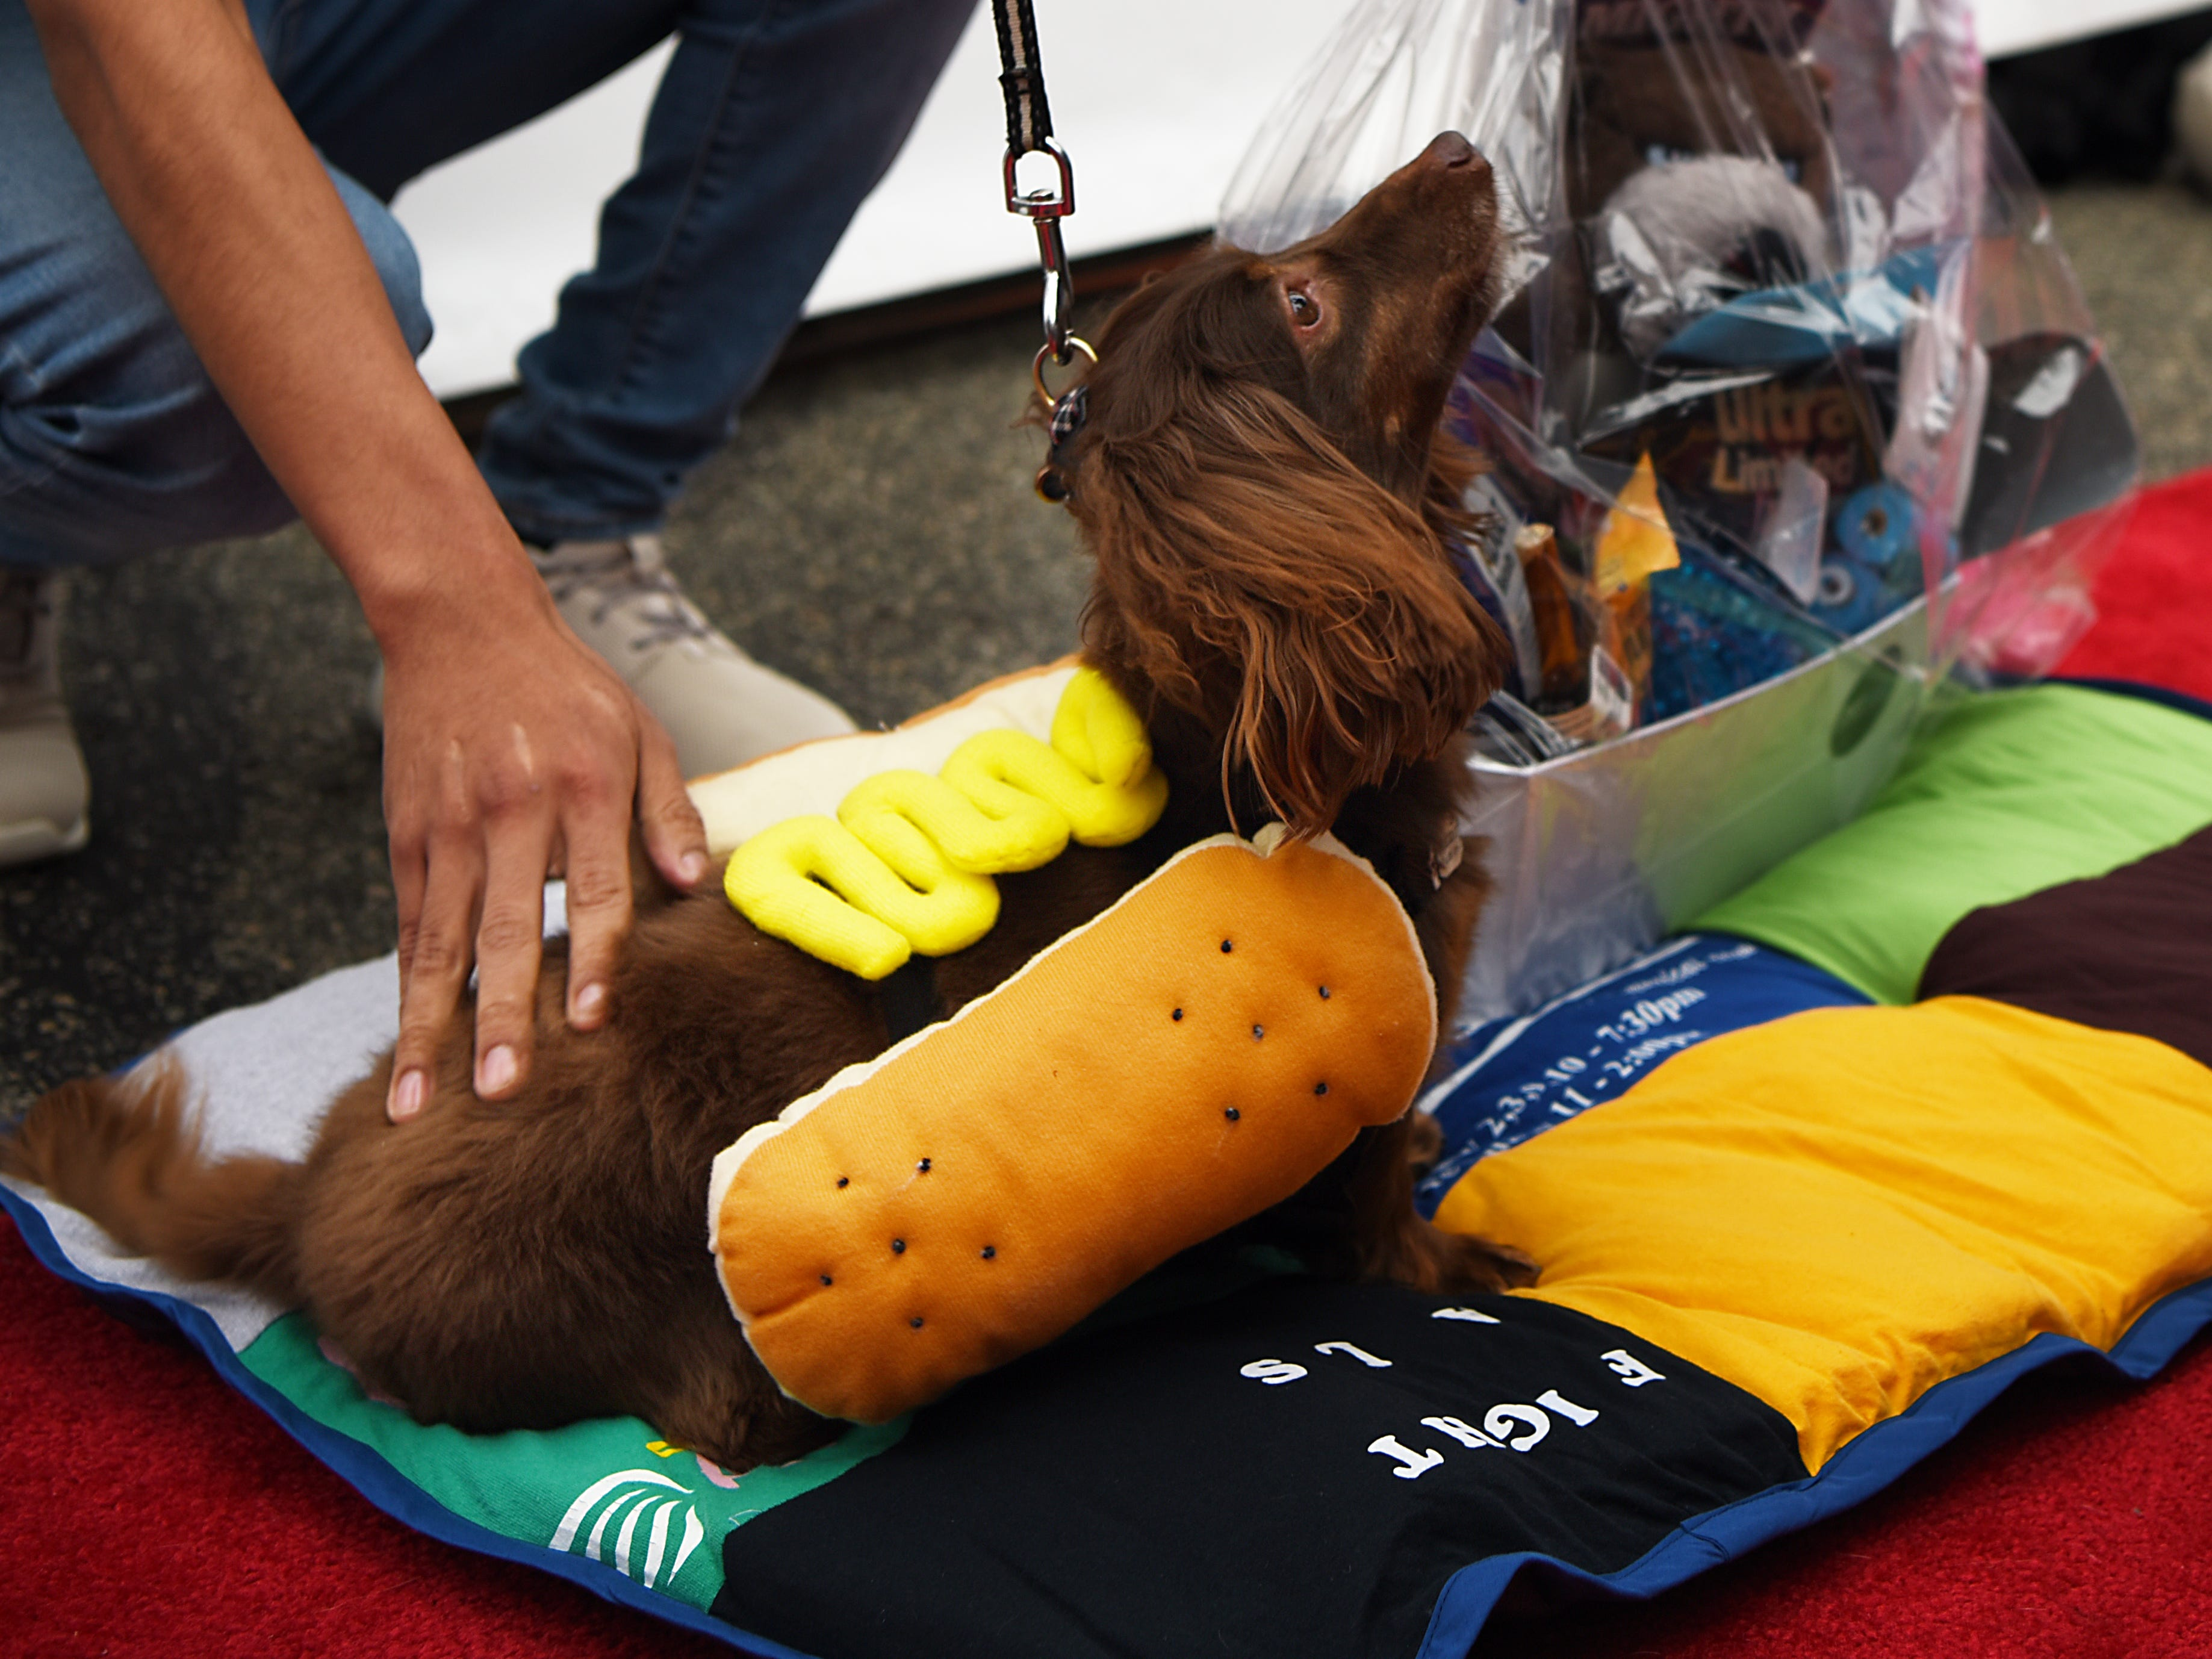 A Wiener dog dressed as a Wiener wins a prize at Woofstock 2018, a benefit for Bergen County animal rescue organizations, at City Place in Edgewater on Saturday September 8, 2018.